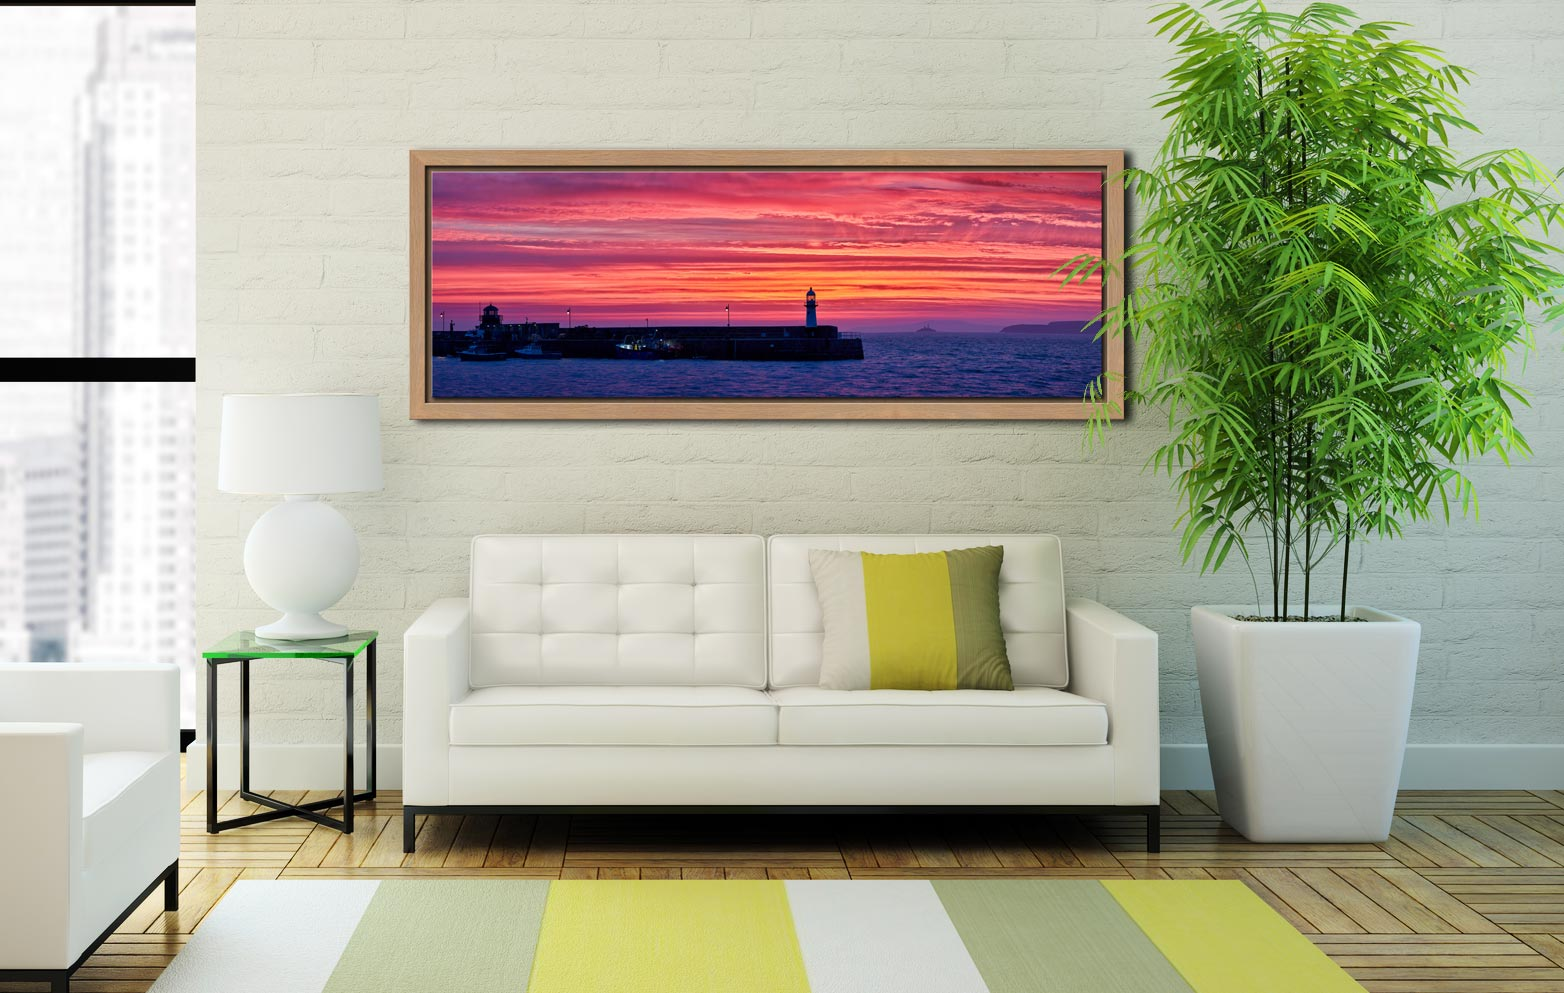 Burning skies over St Ives Harbor and Godrevy Lighthouse before dawn - Oak floater frame with acrylic glazing on Wall